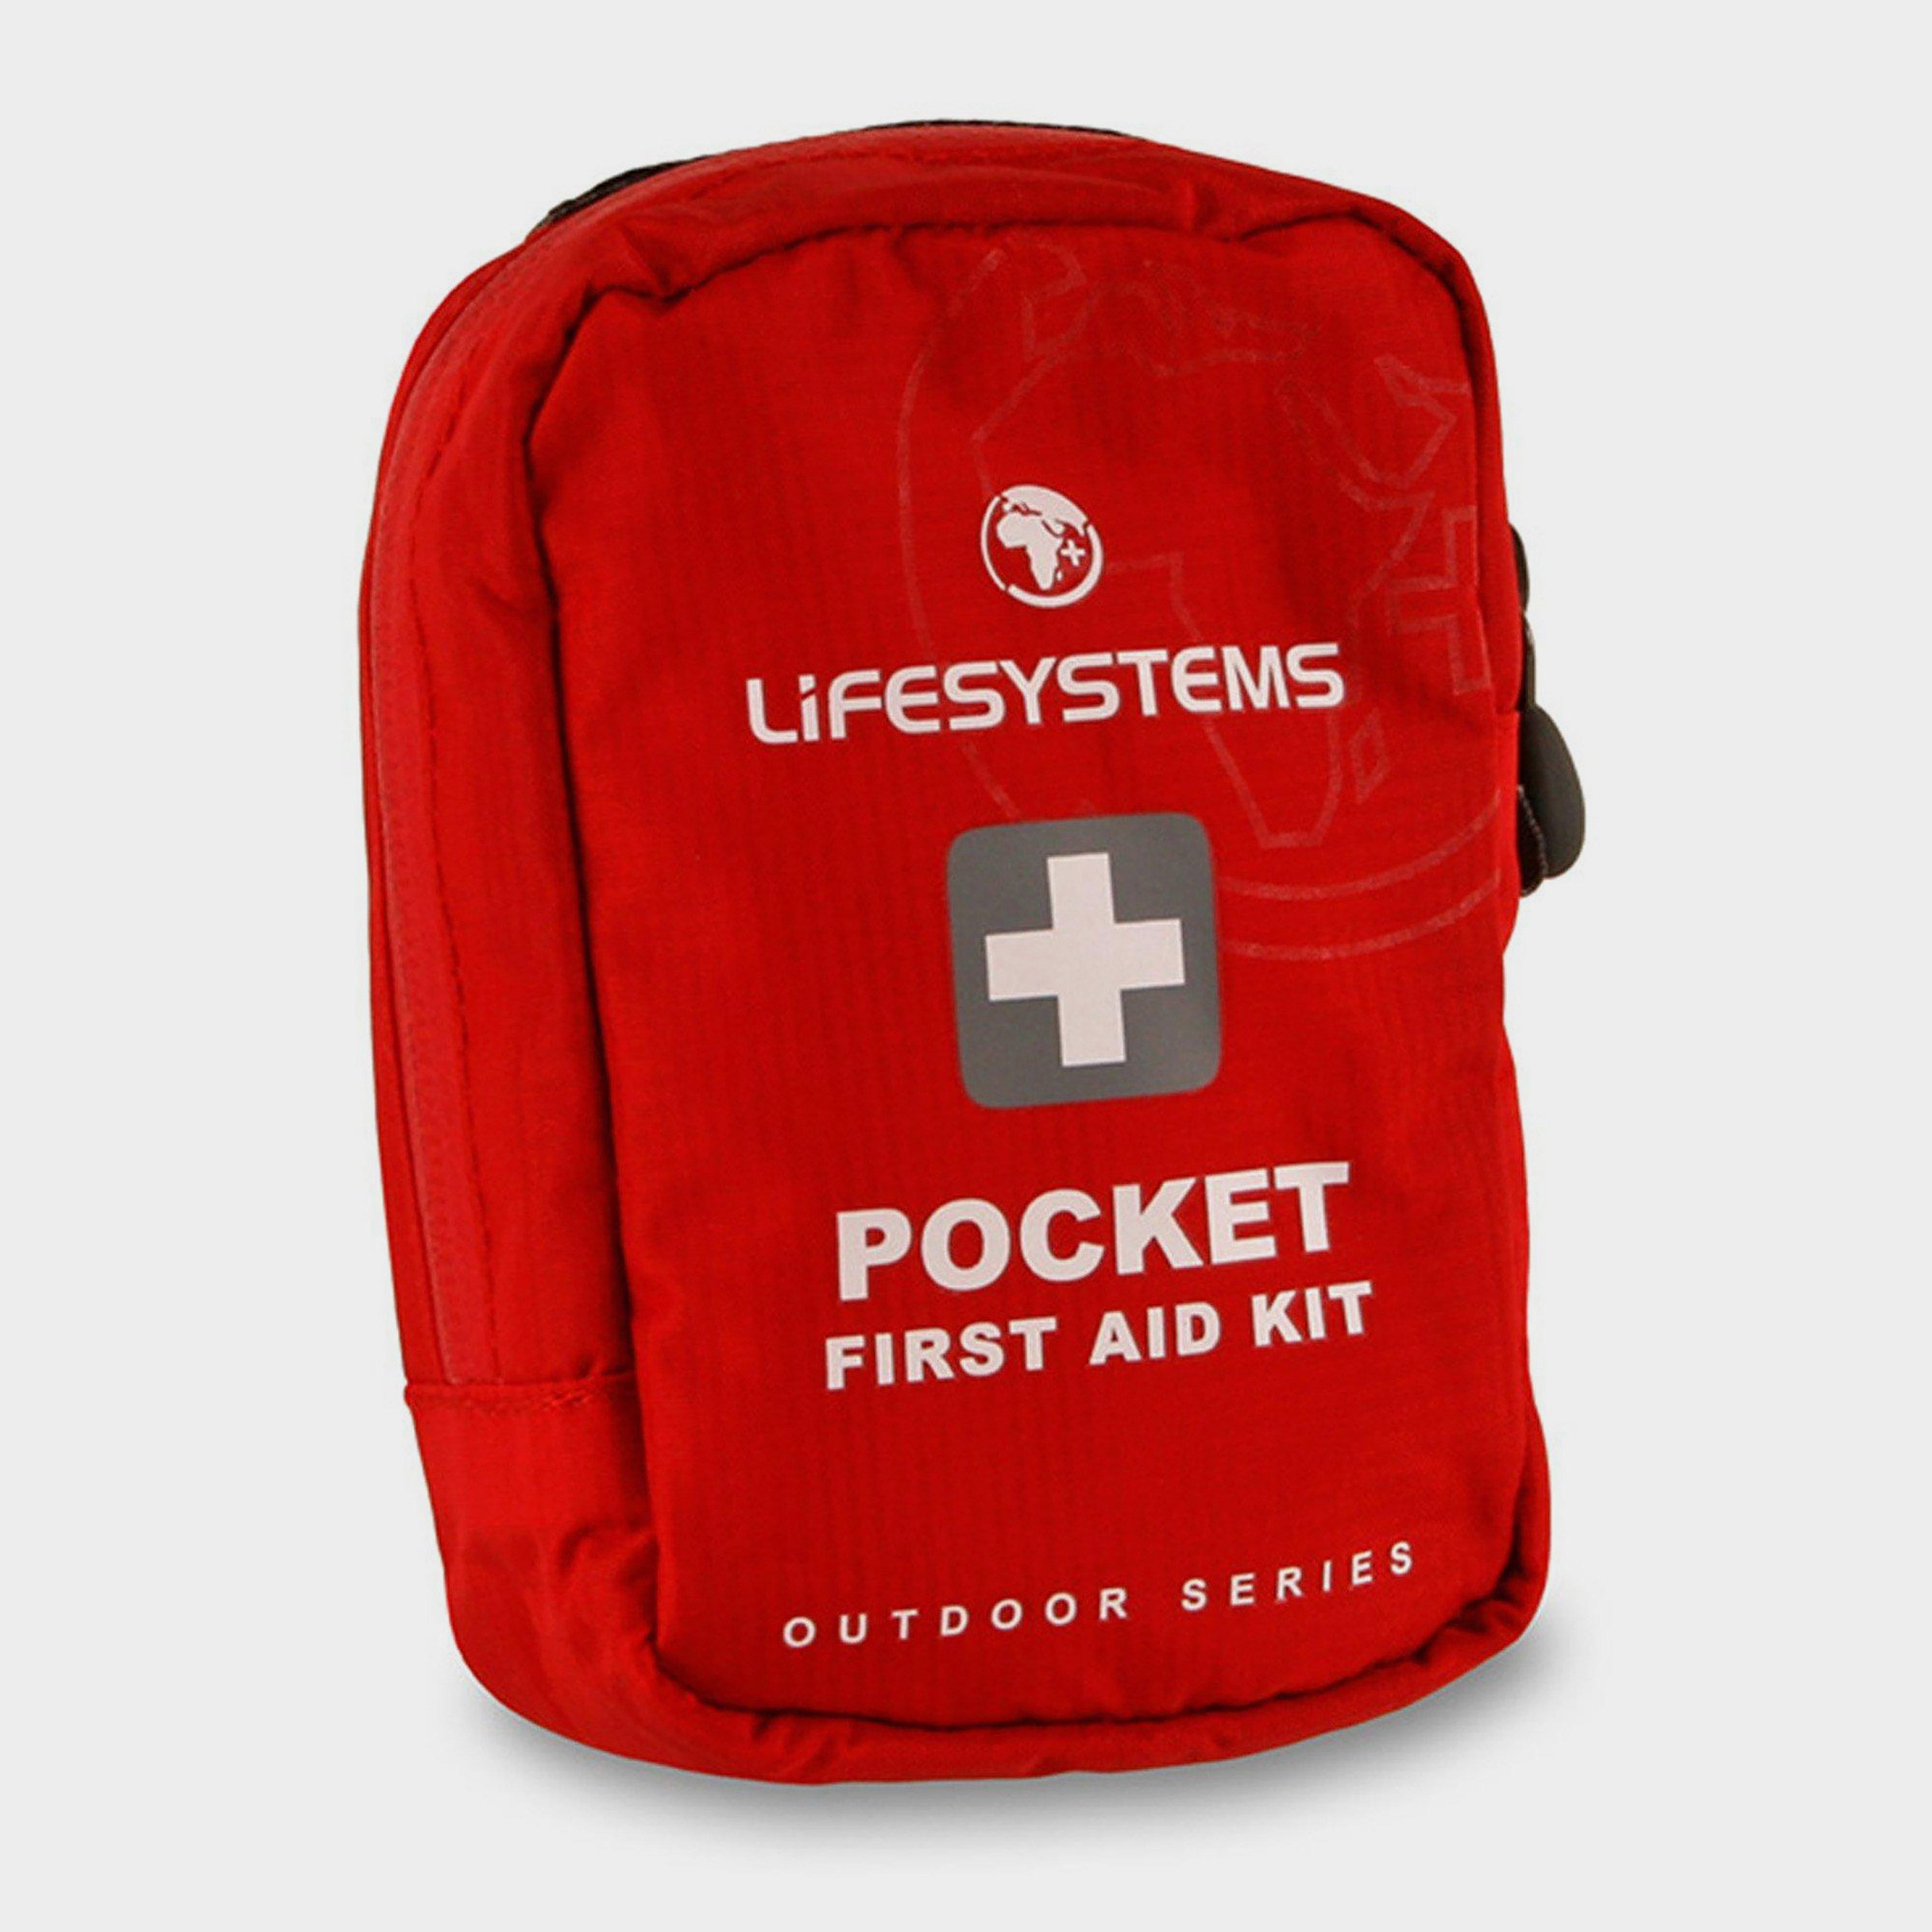 Lifesystems Lifesystems Pocket First Aid Kit - Red, Red